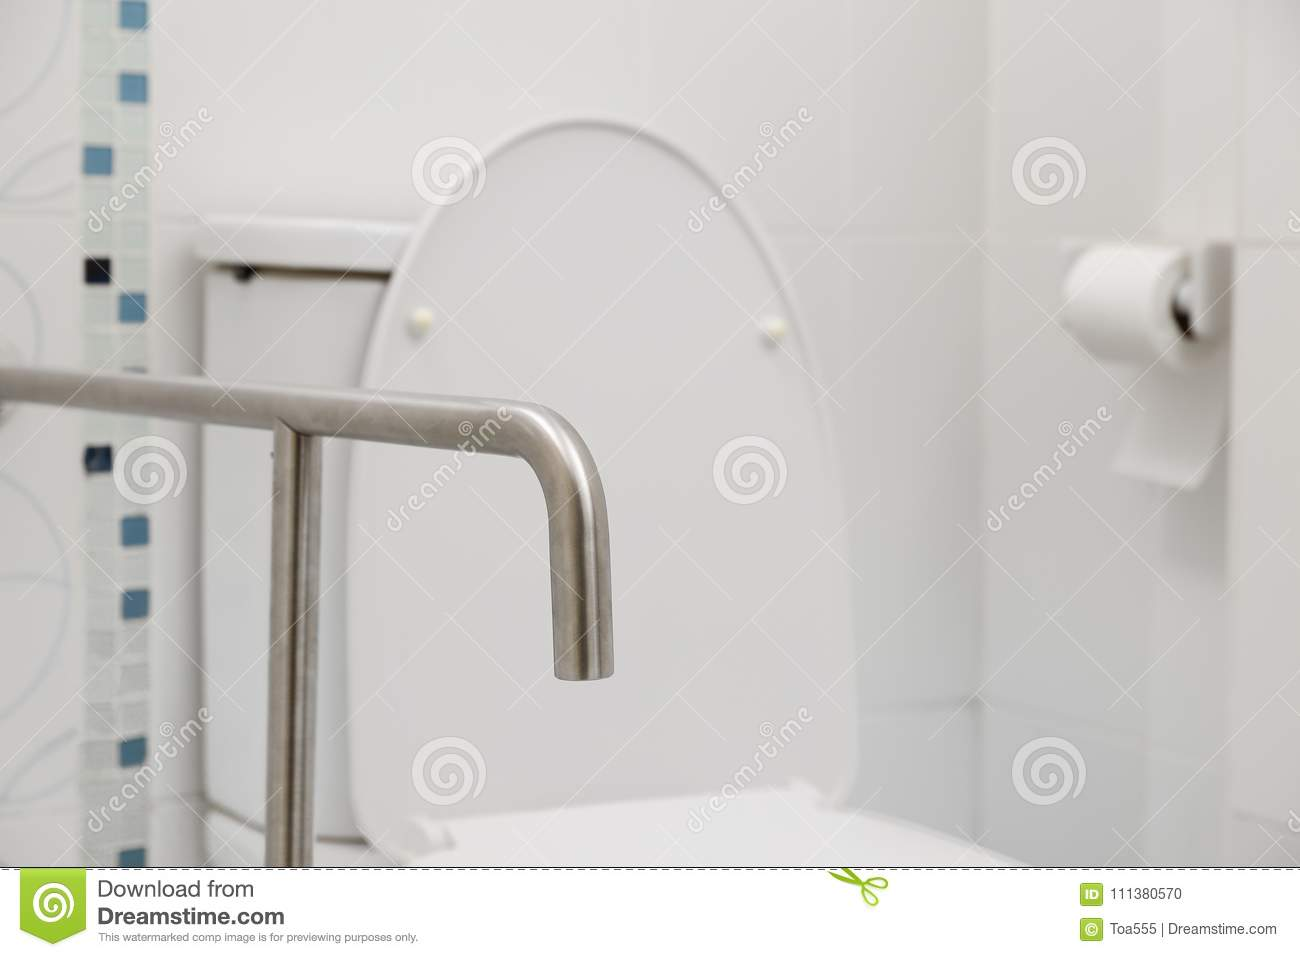 Safety And Grab Hand Rails For Toilets Stock Photo - Image of ...